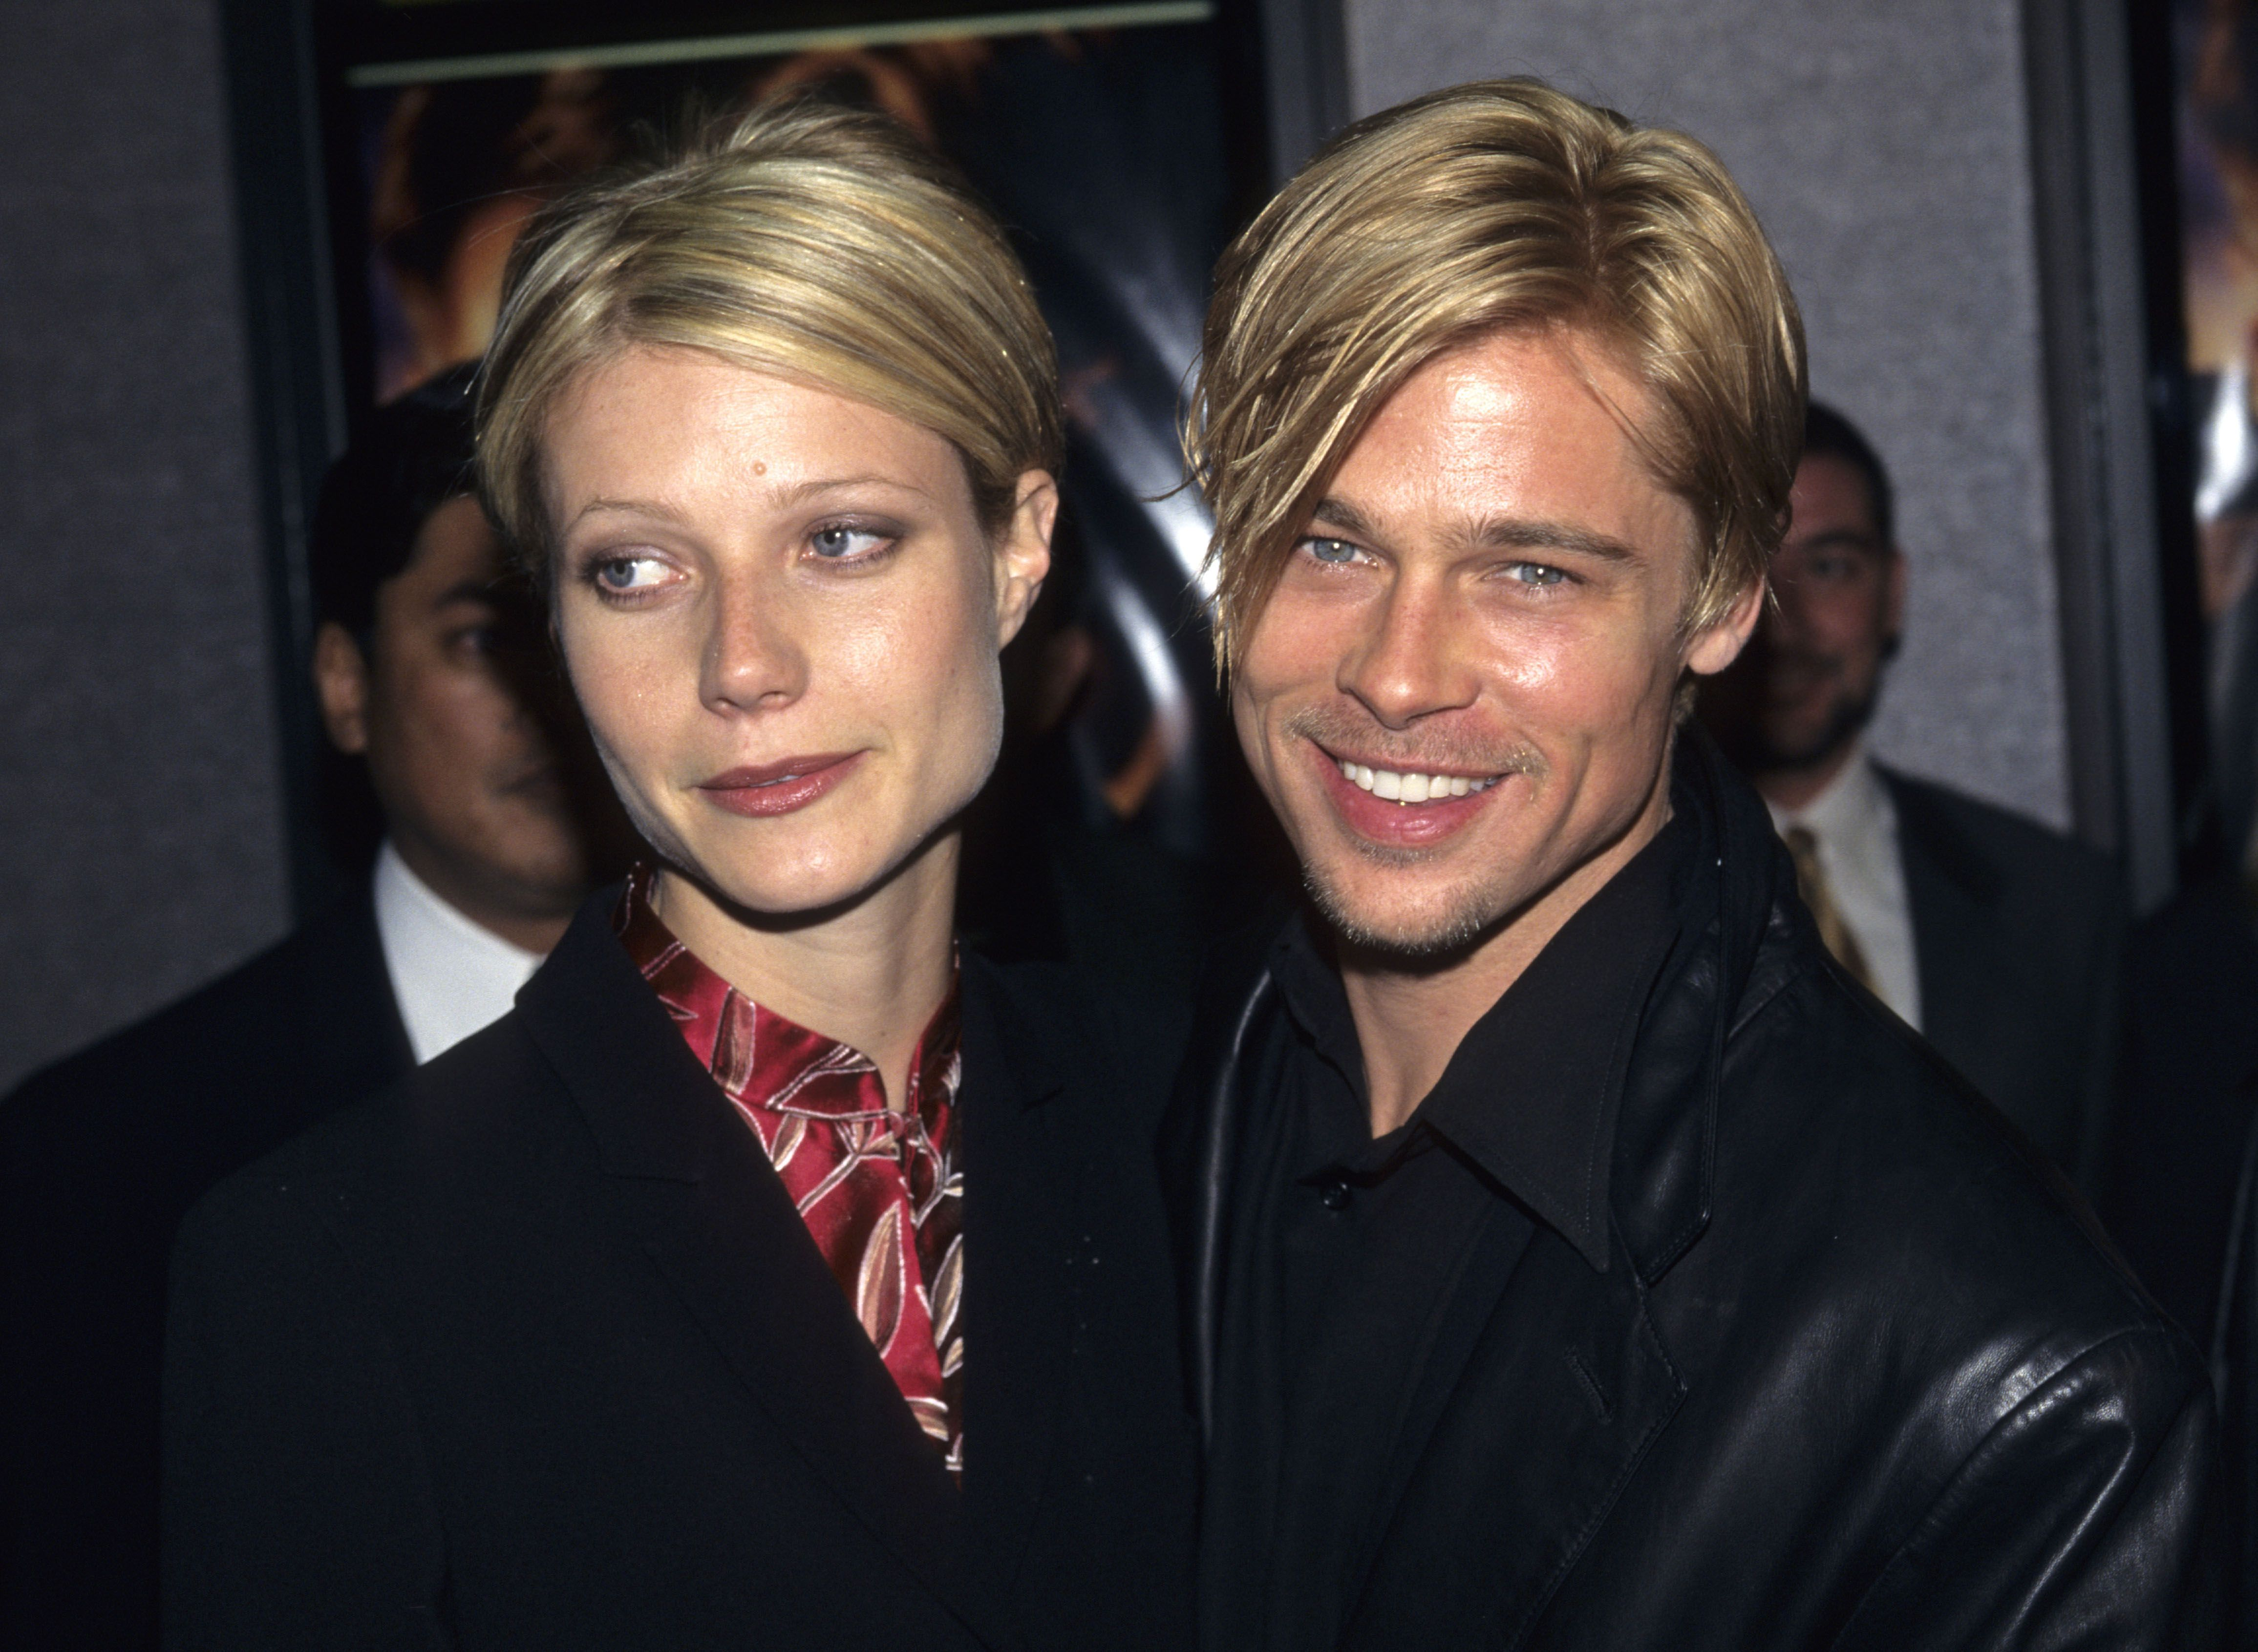 Brad Pitt Explains Why He Confronted Harvey Weinstein for Gwyneth Paltrow